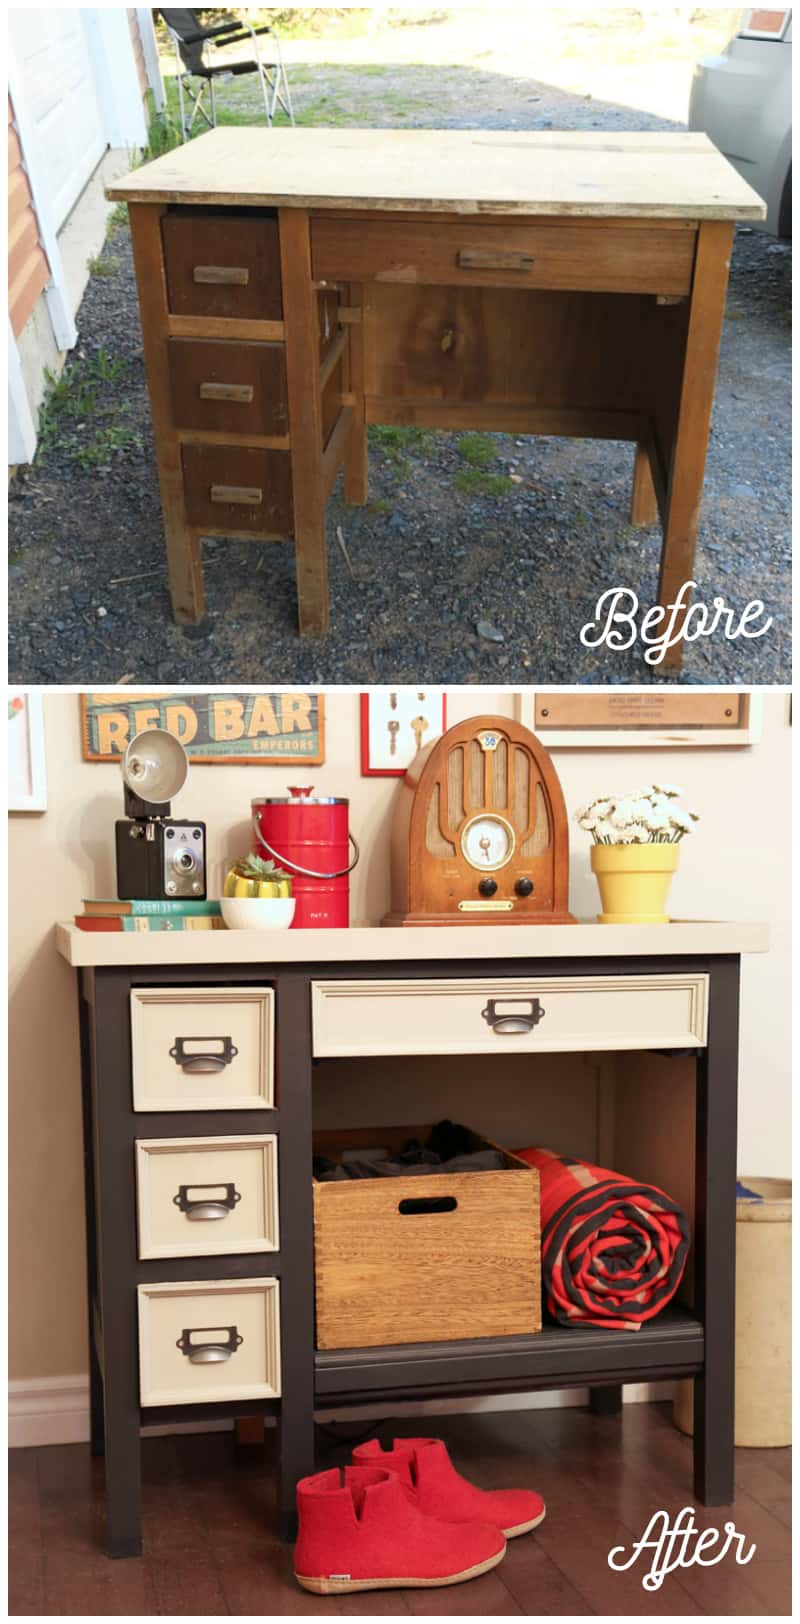 Before and After old desk makeover